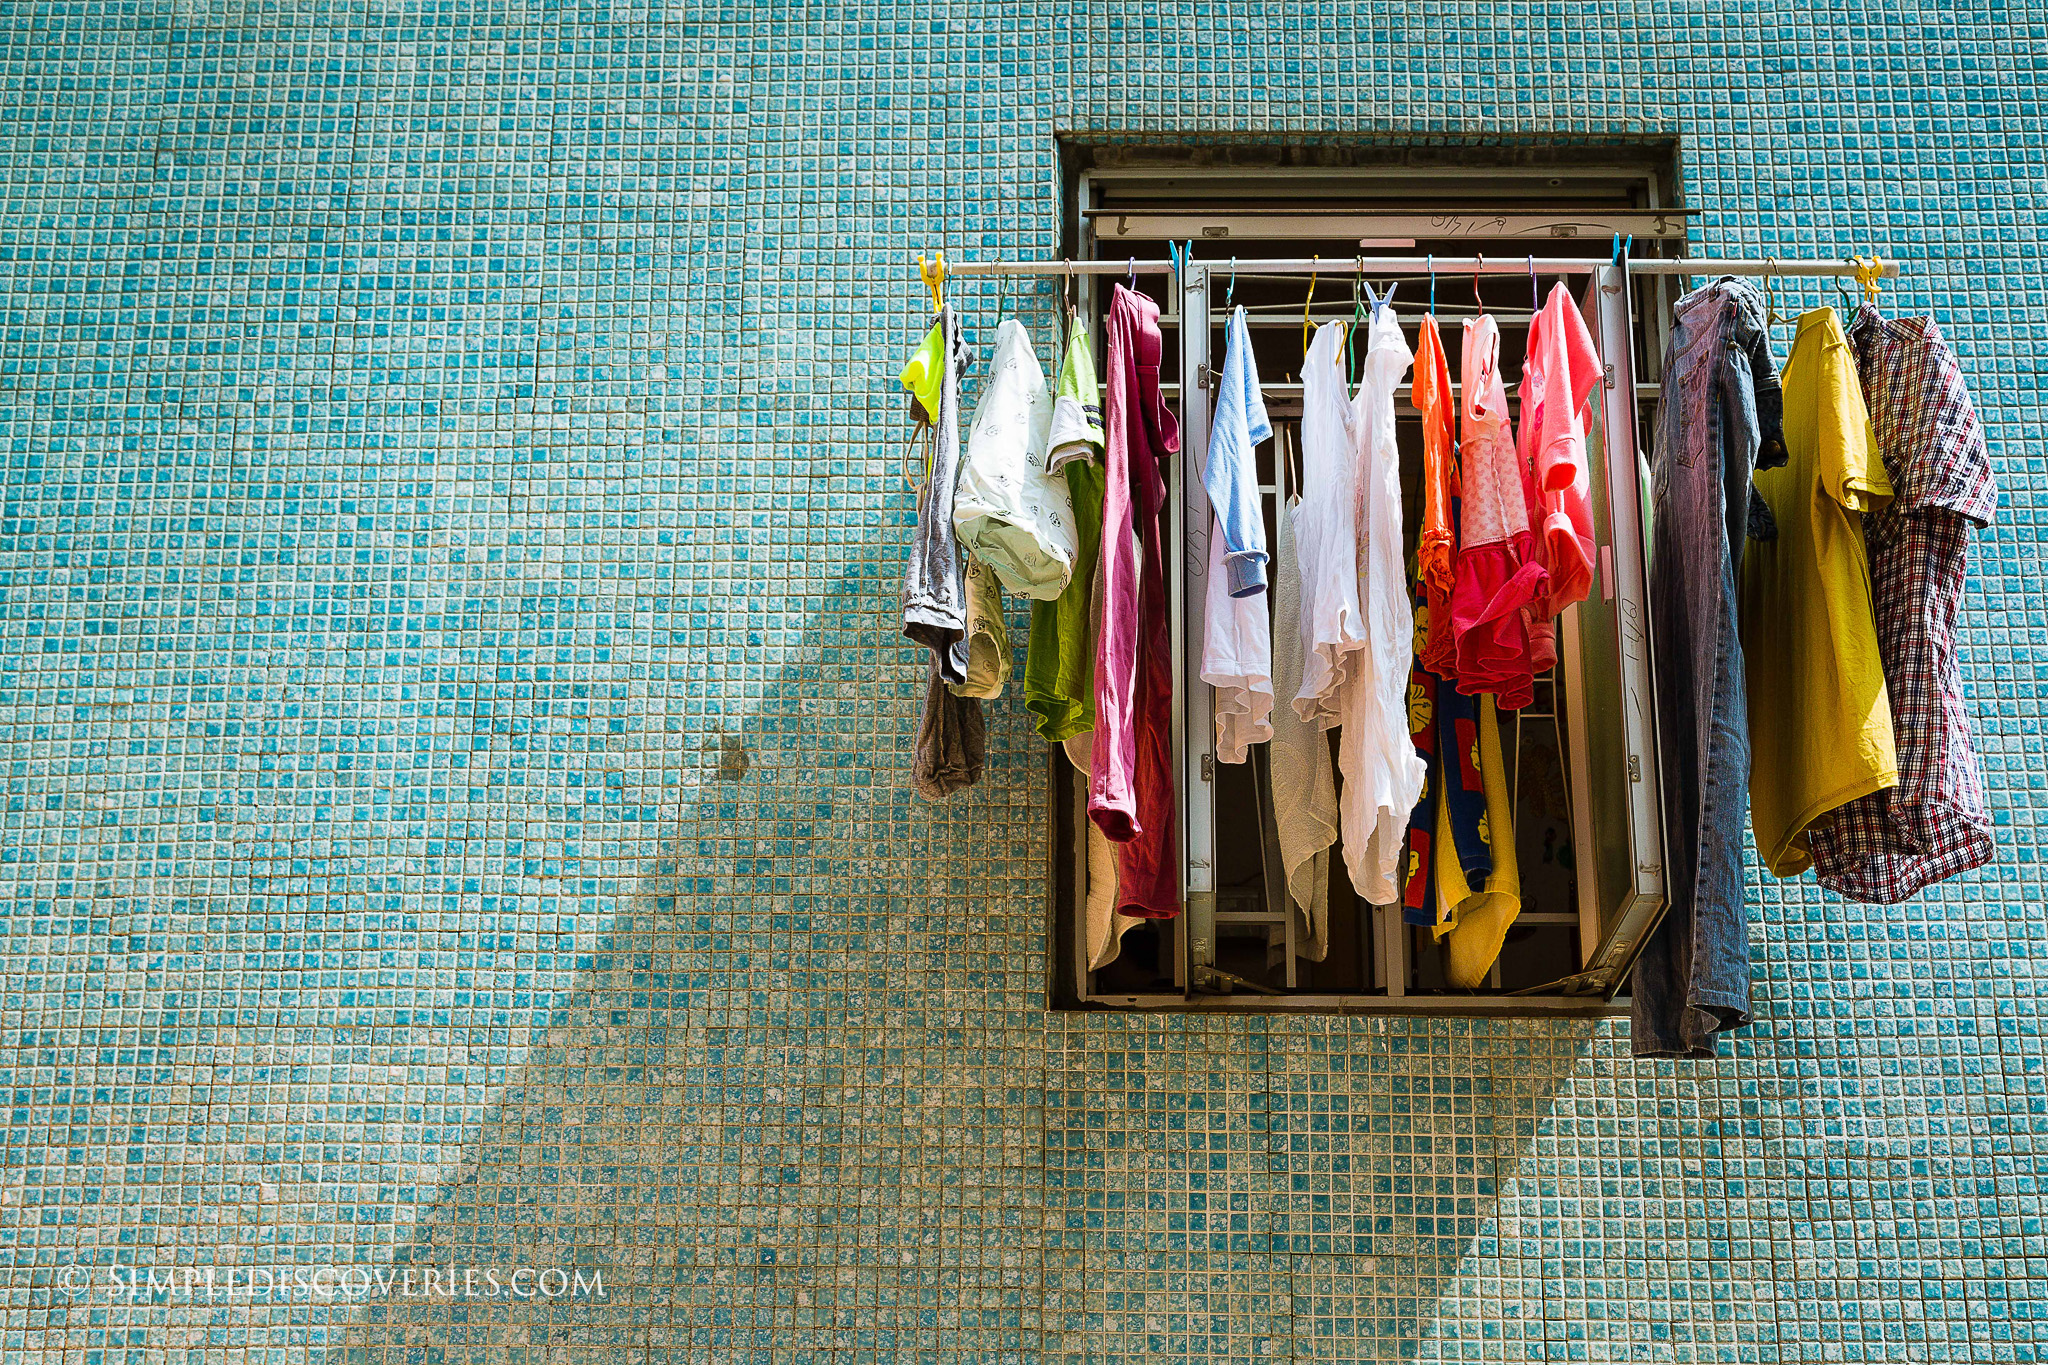 hong_kong_laundry